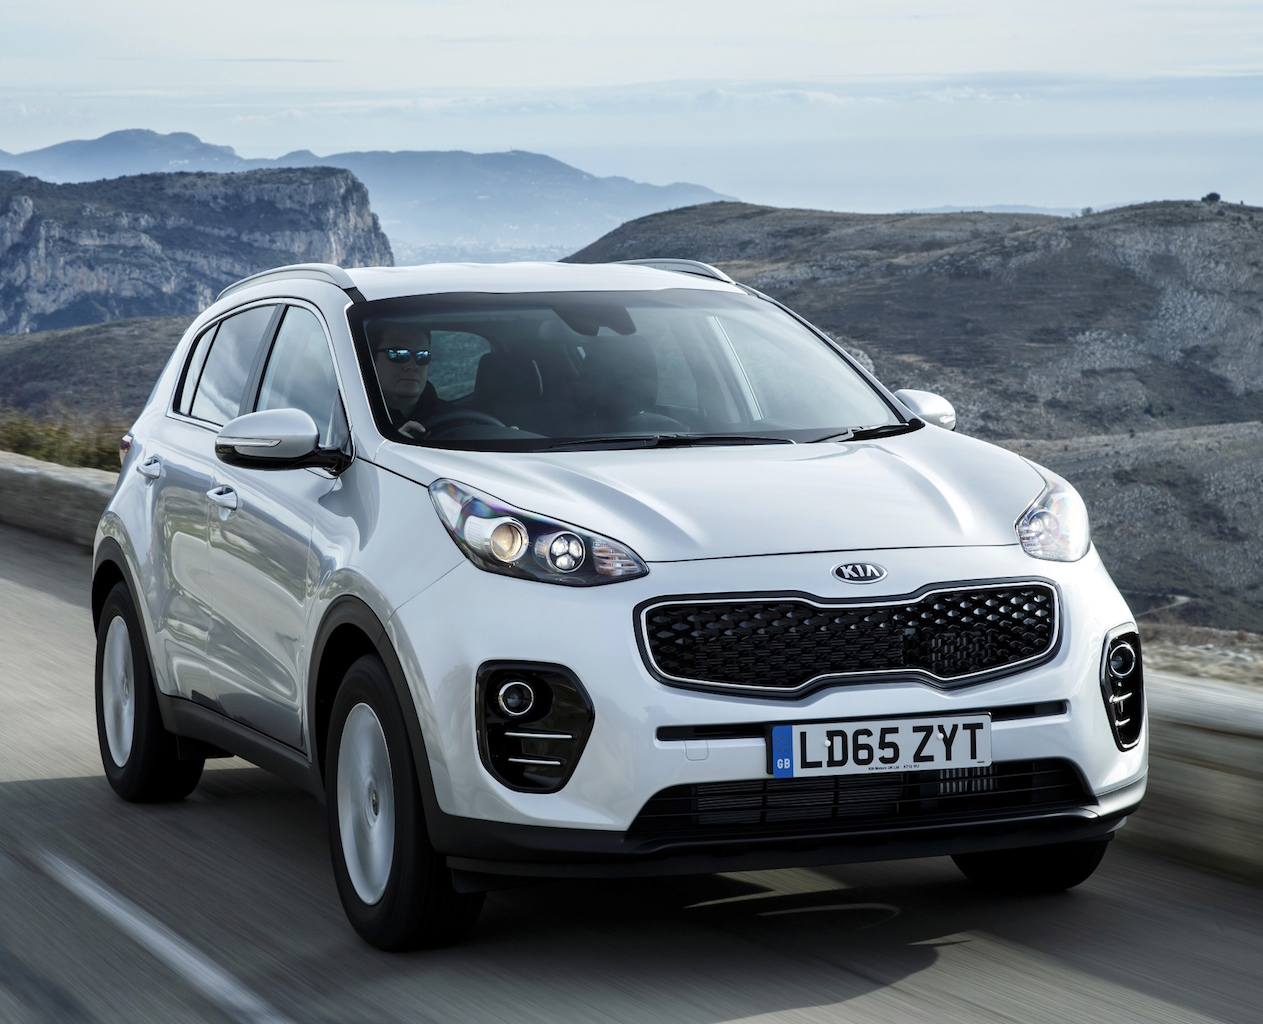 Kia Sportage 1.7 CRDi front action copy